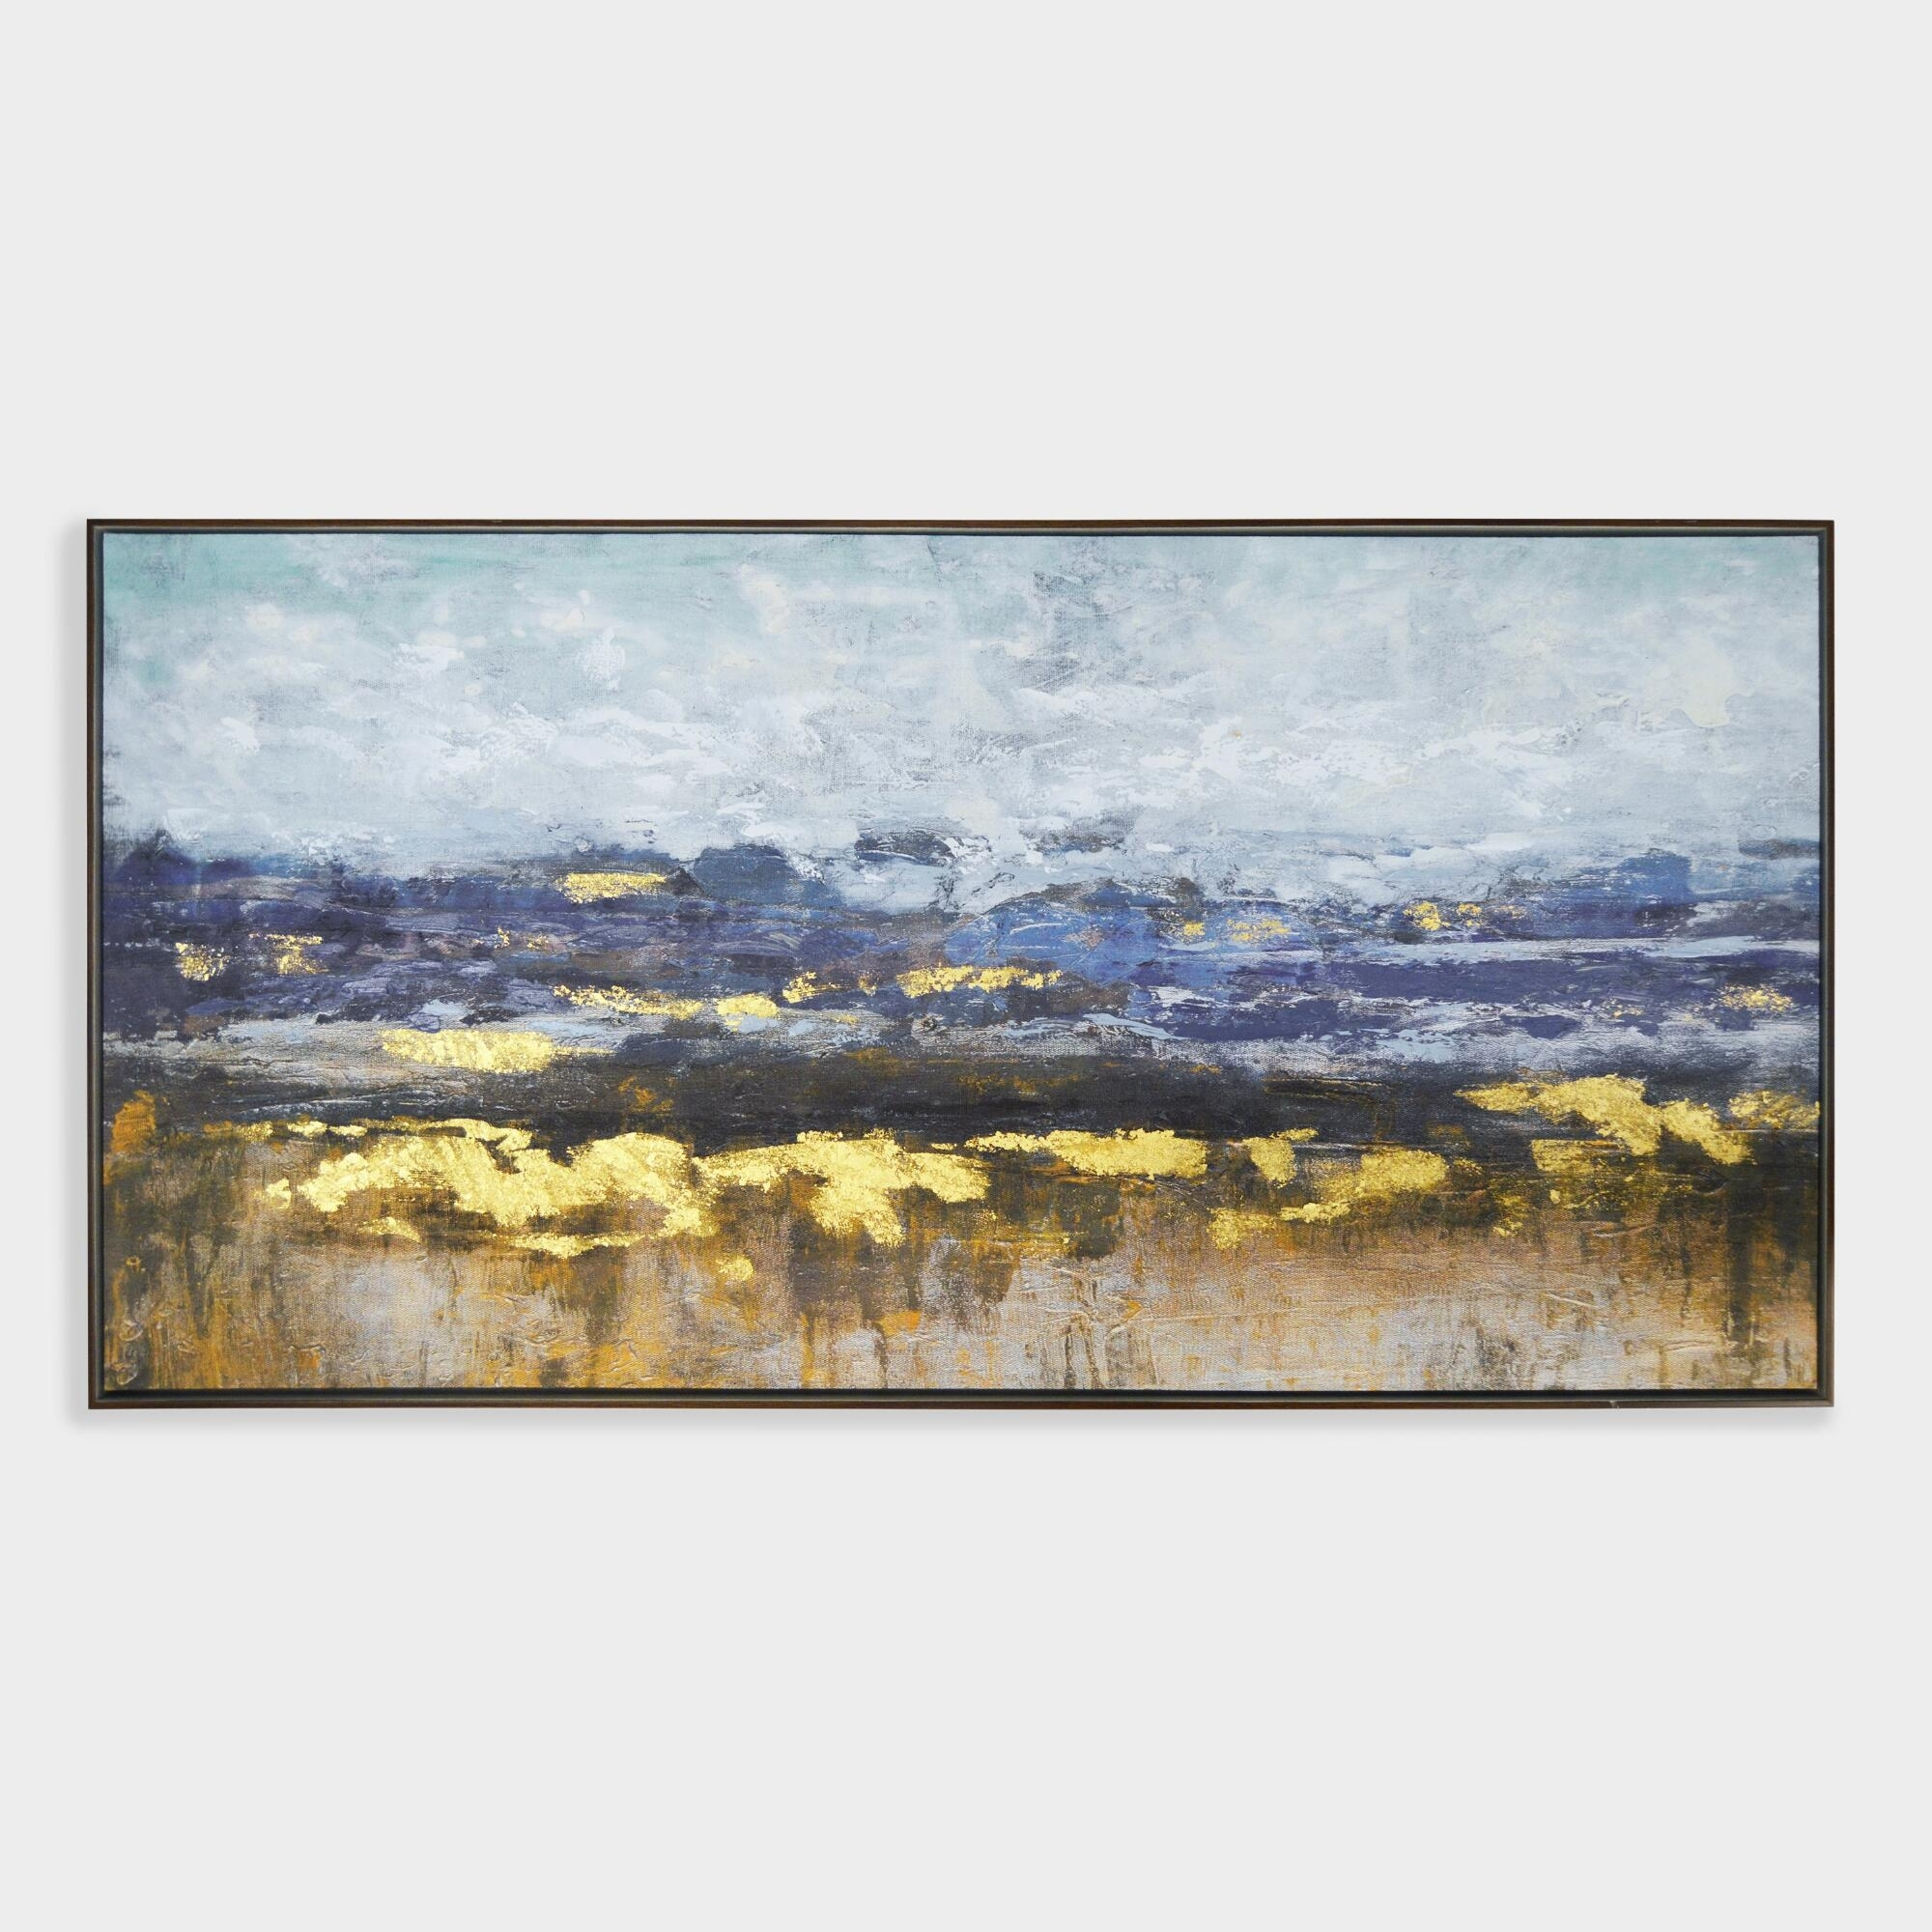 Distant Landscape Wall Art In Brown Frame: Blue/goldworld Market Intended For World Market Wall Art (View 14 of 20)